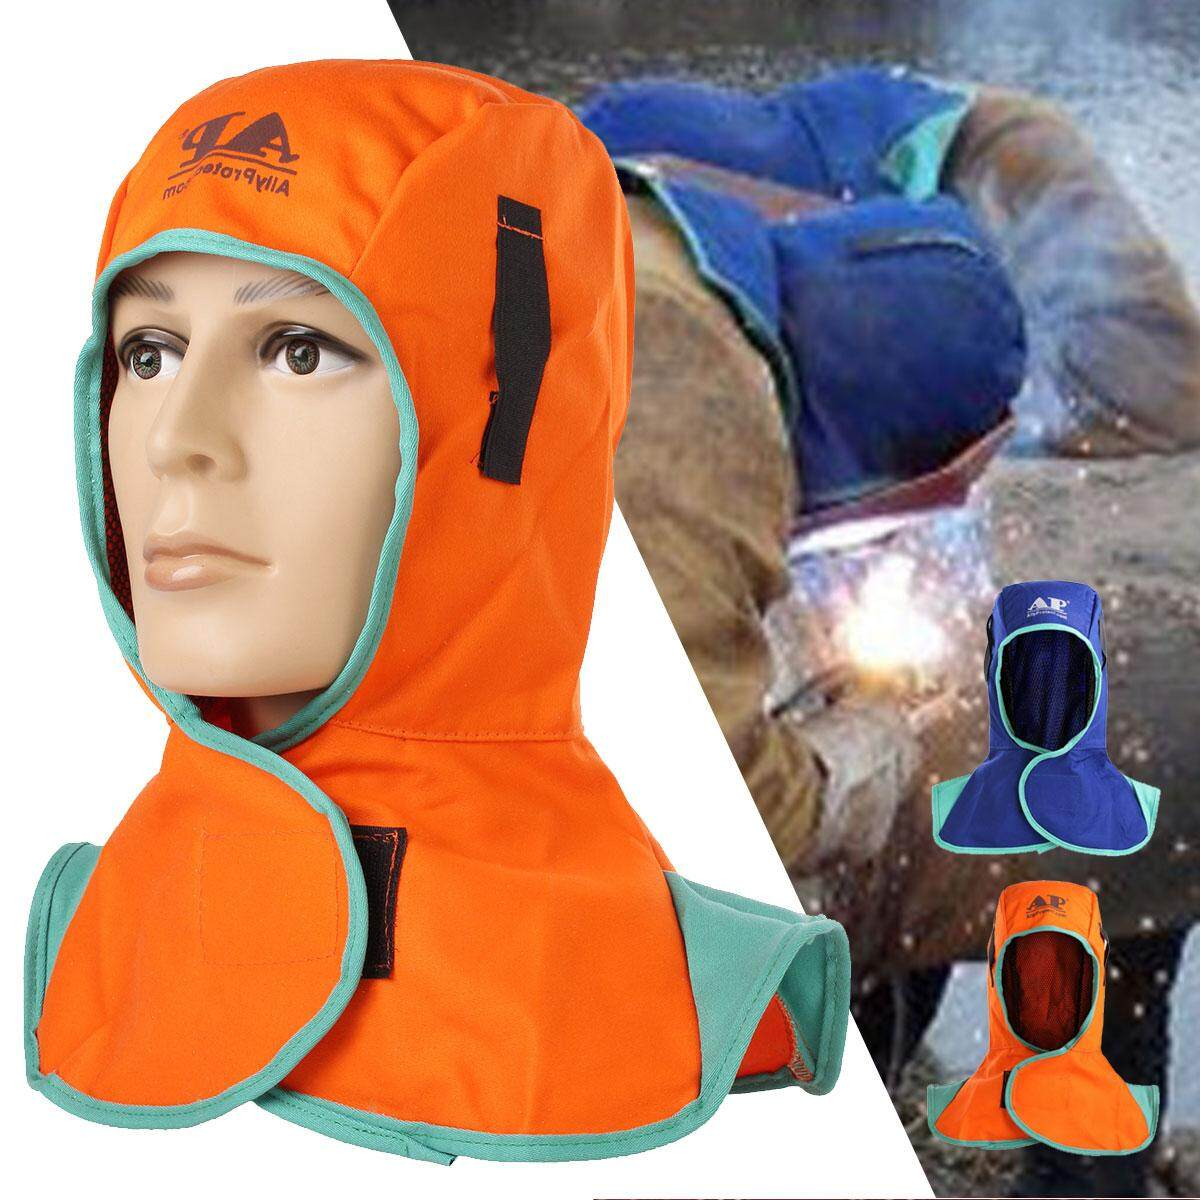 3 x Flame Retardant Safety Helmet Welding Neck Protective Hood Welder Head Cap Cover Orange